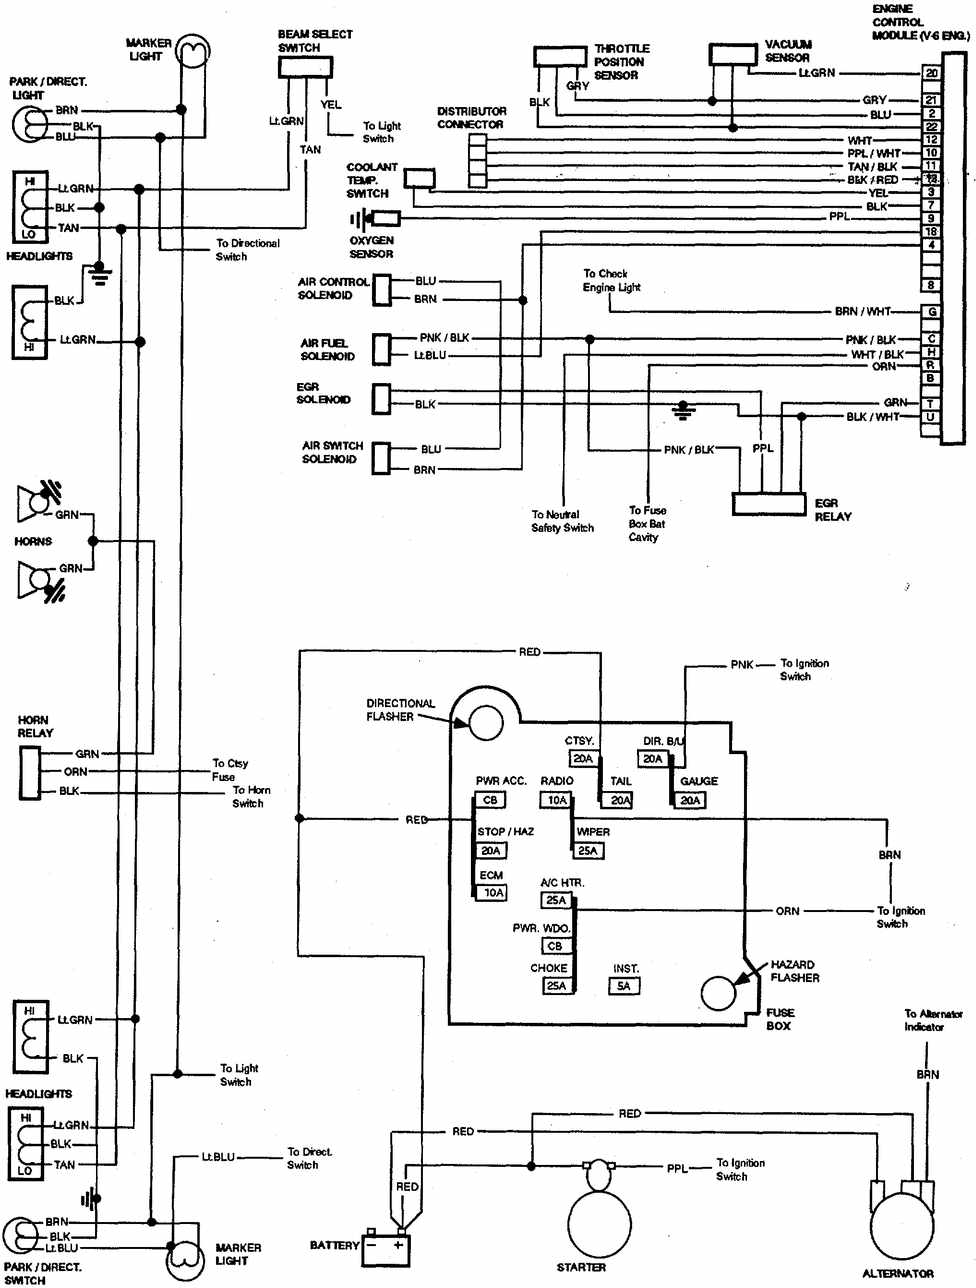 hight resolution of wiring diagram 1987 el camino ss ford steering column wiring diagram1983 el camino wiring diagram wiring